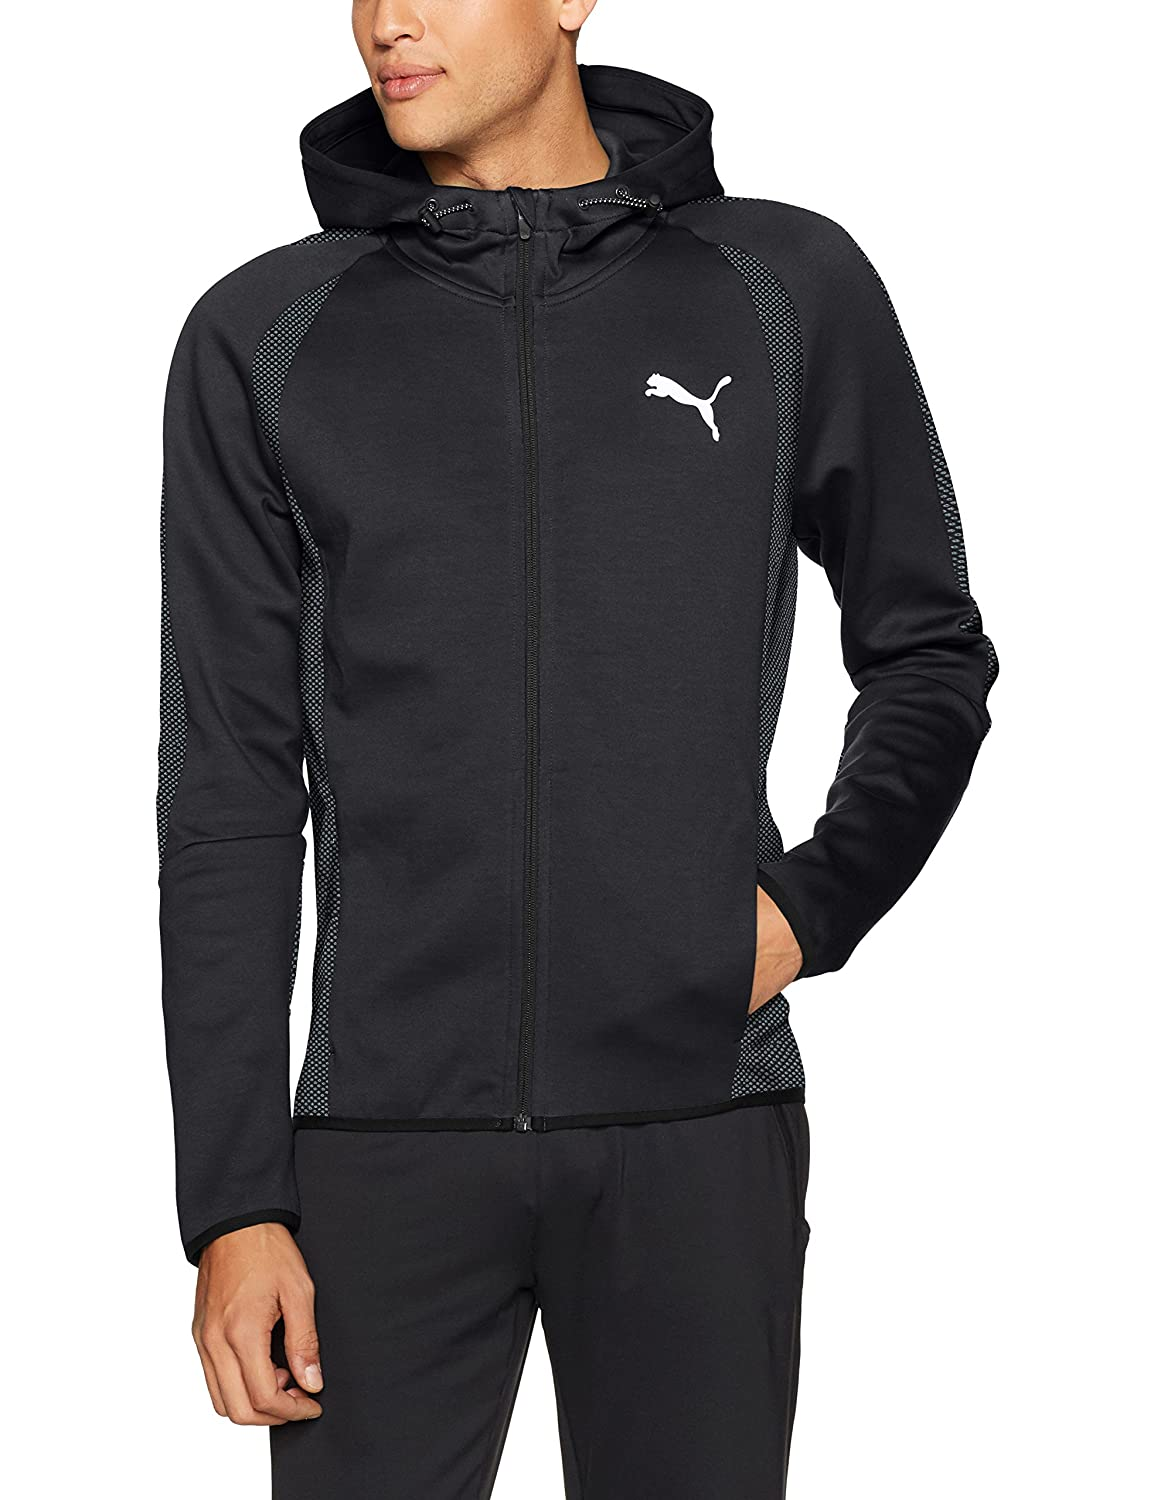 PUMA Mens Standard Evostripe Ultimate Athleisure Full Zip Training Hoodie